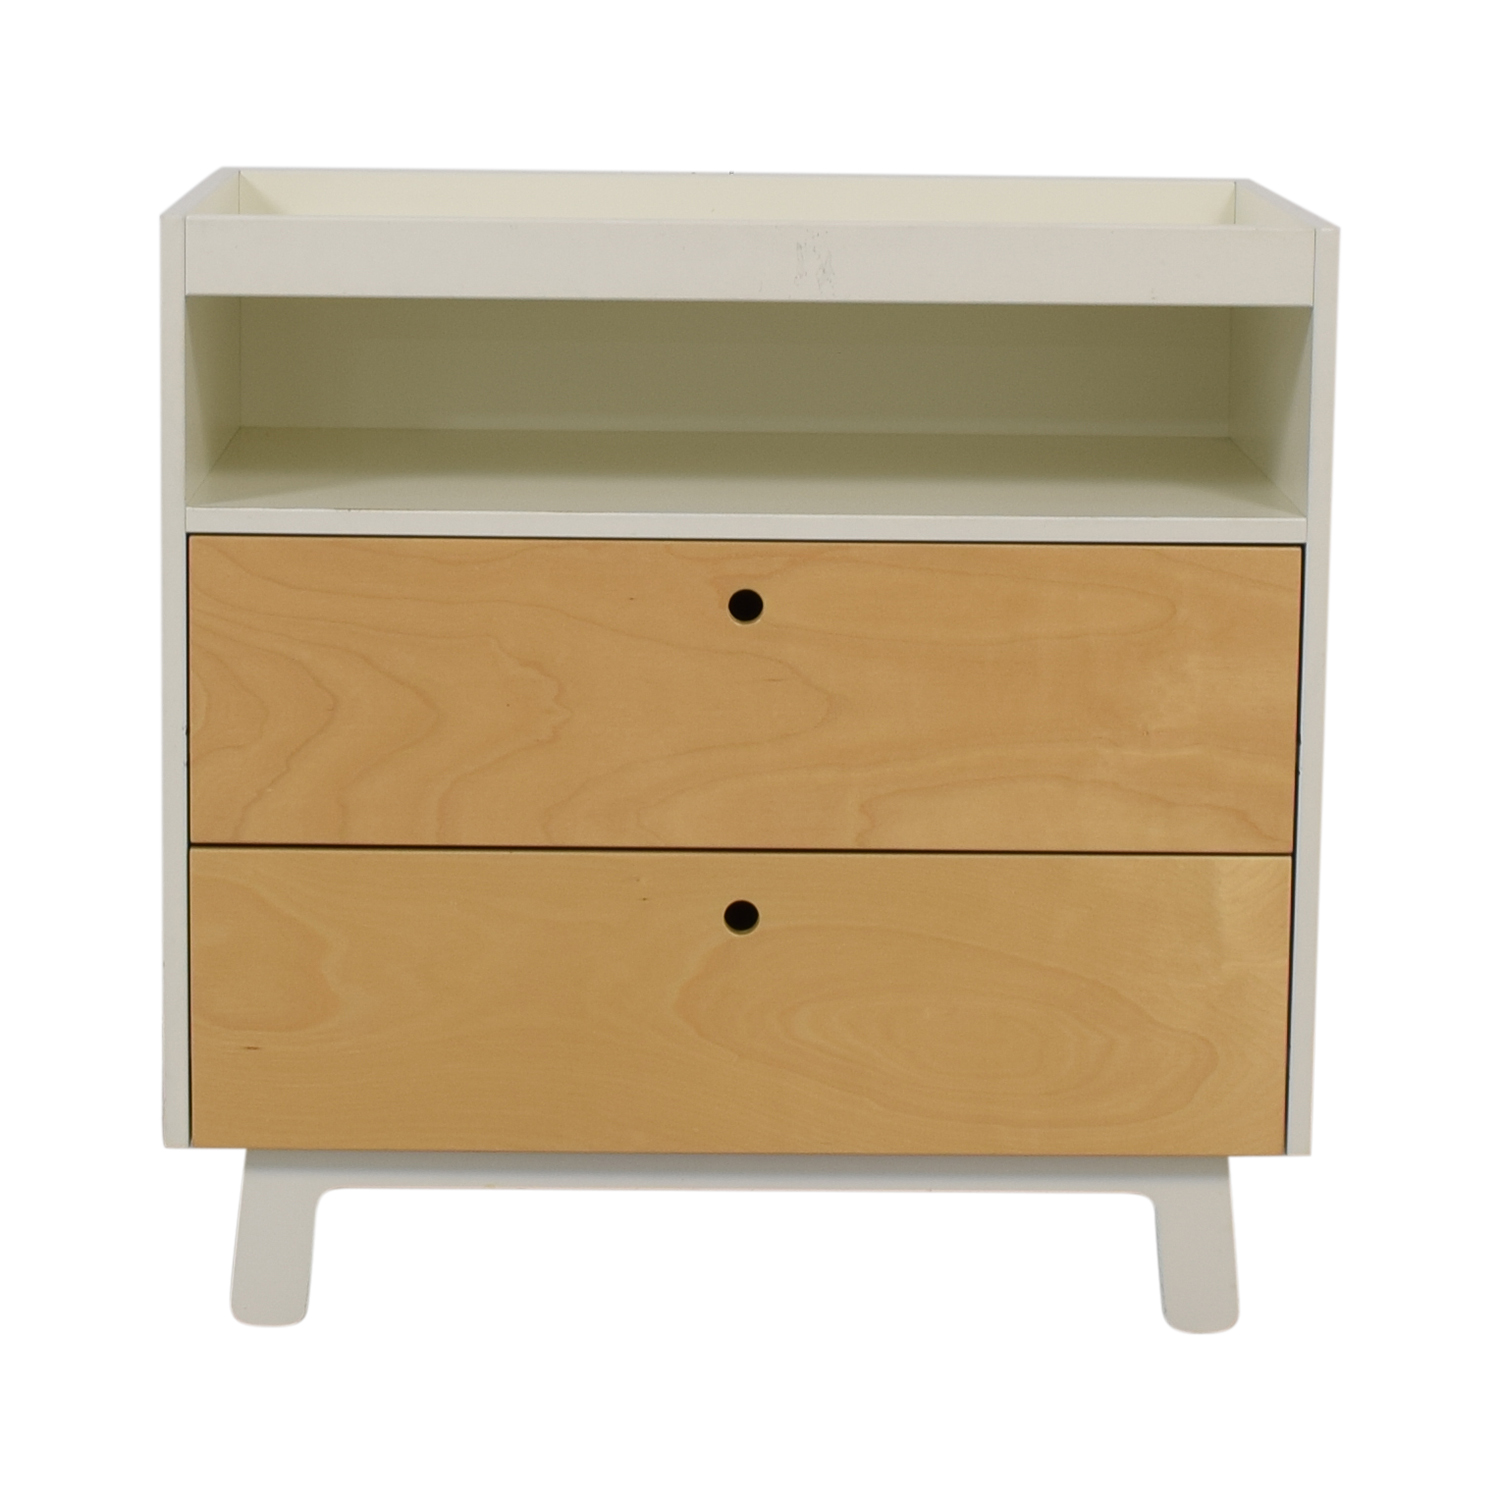 Oeuf White and Natural Two-Drawer Dresser with Changing Table Top Oeuf